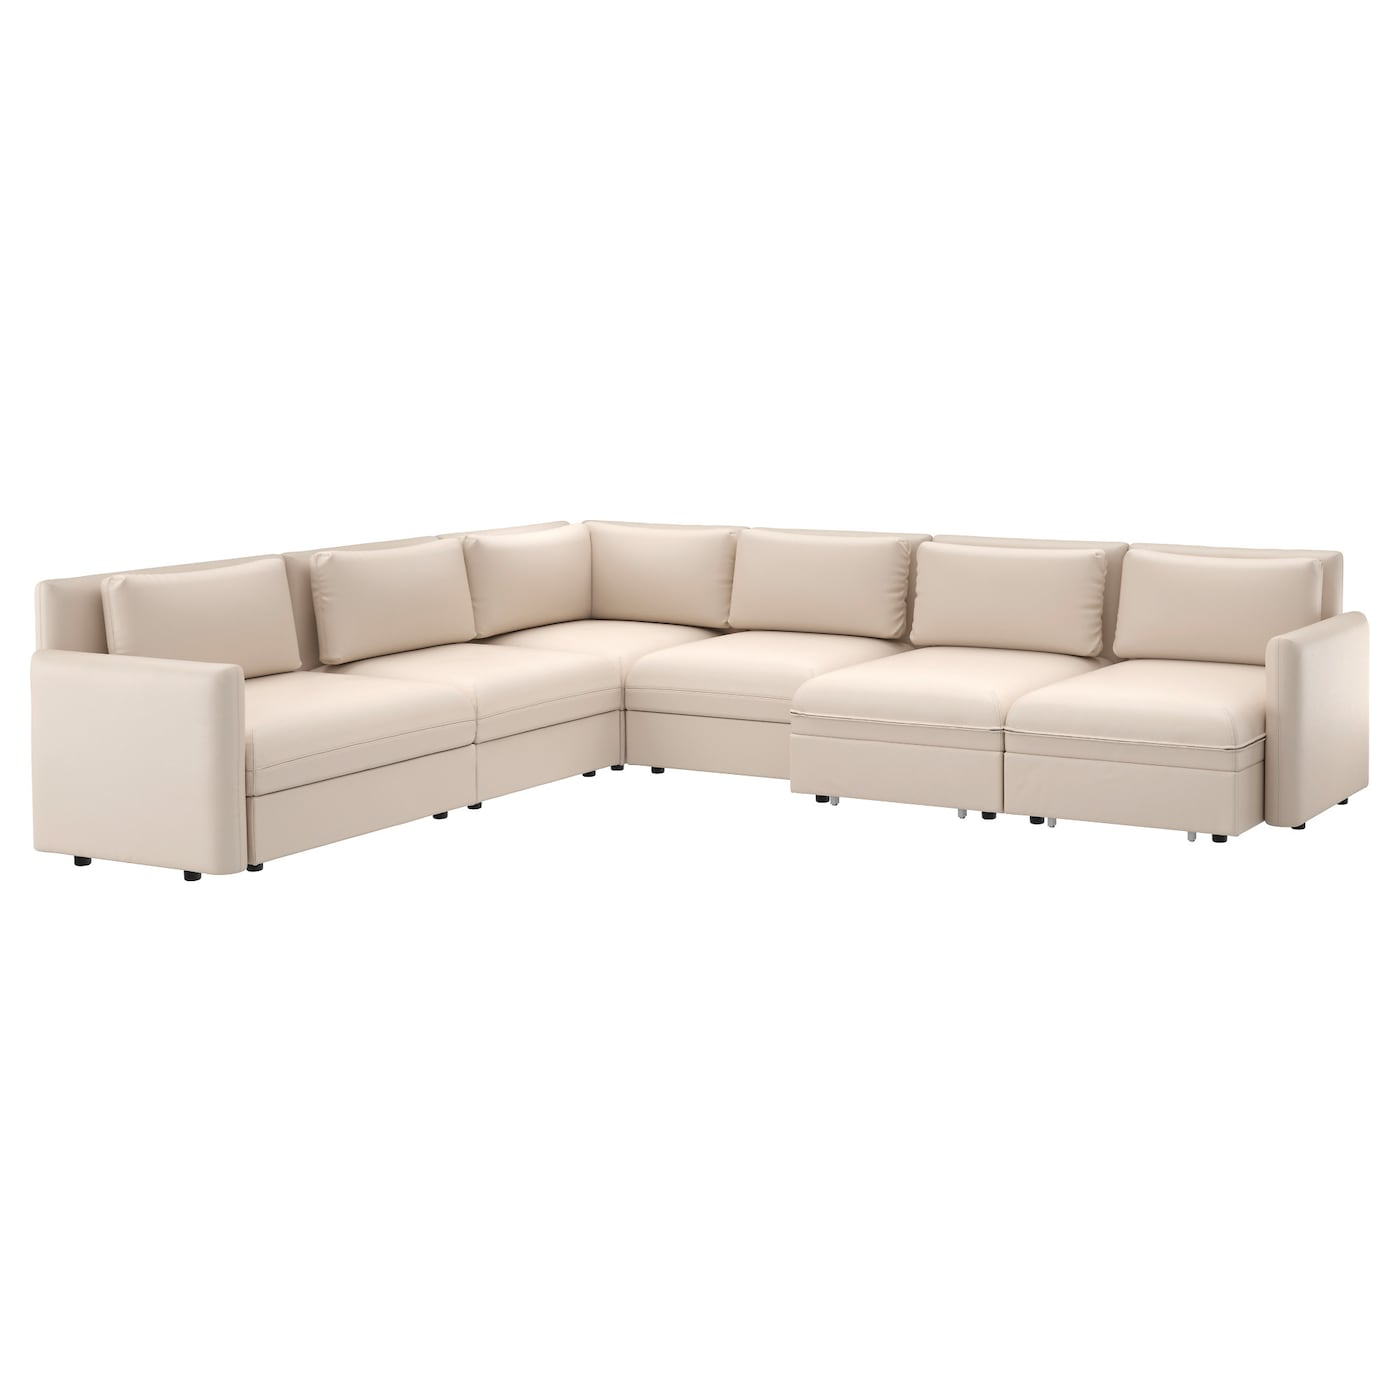 Vallentuna 6 seat corner sofa with bed murum beige ikea for Ikea couch planer